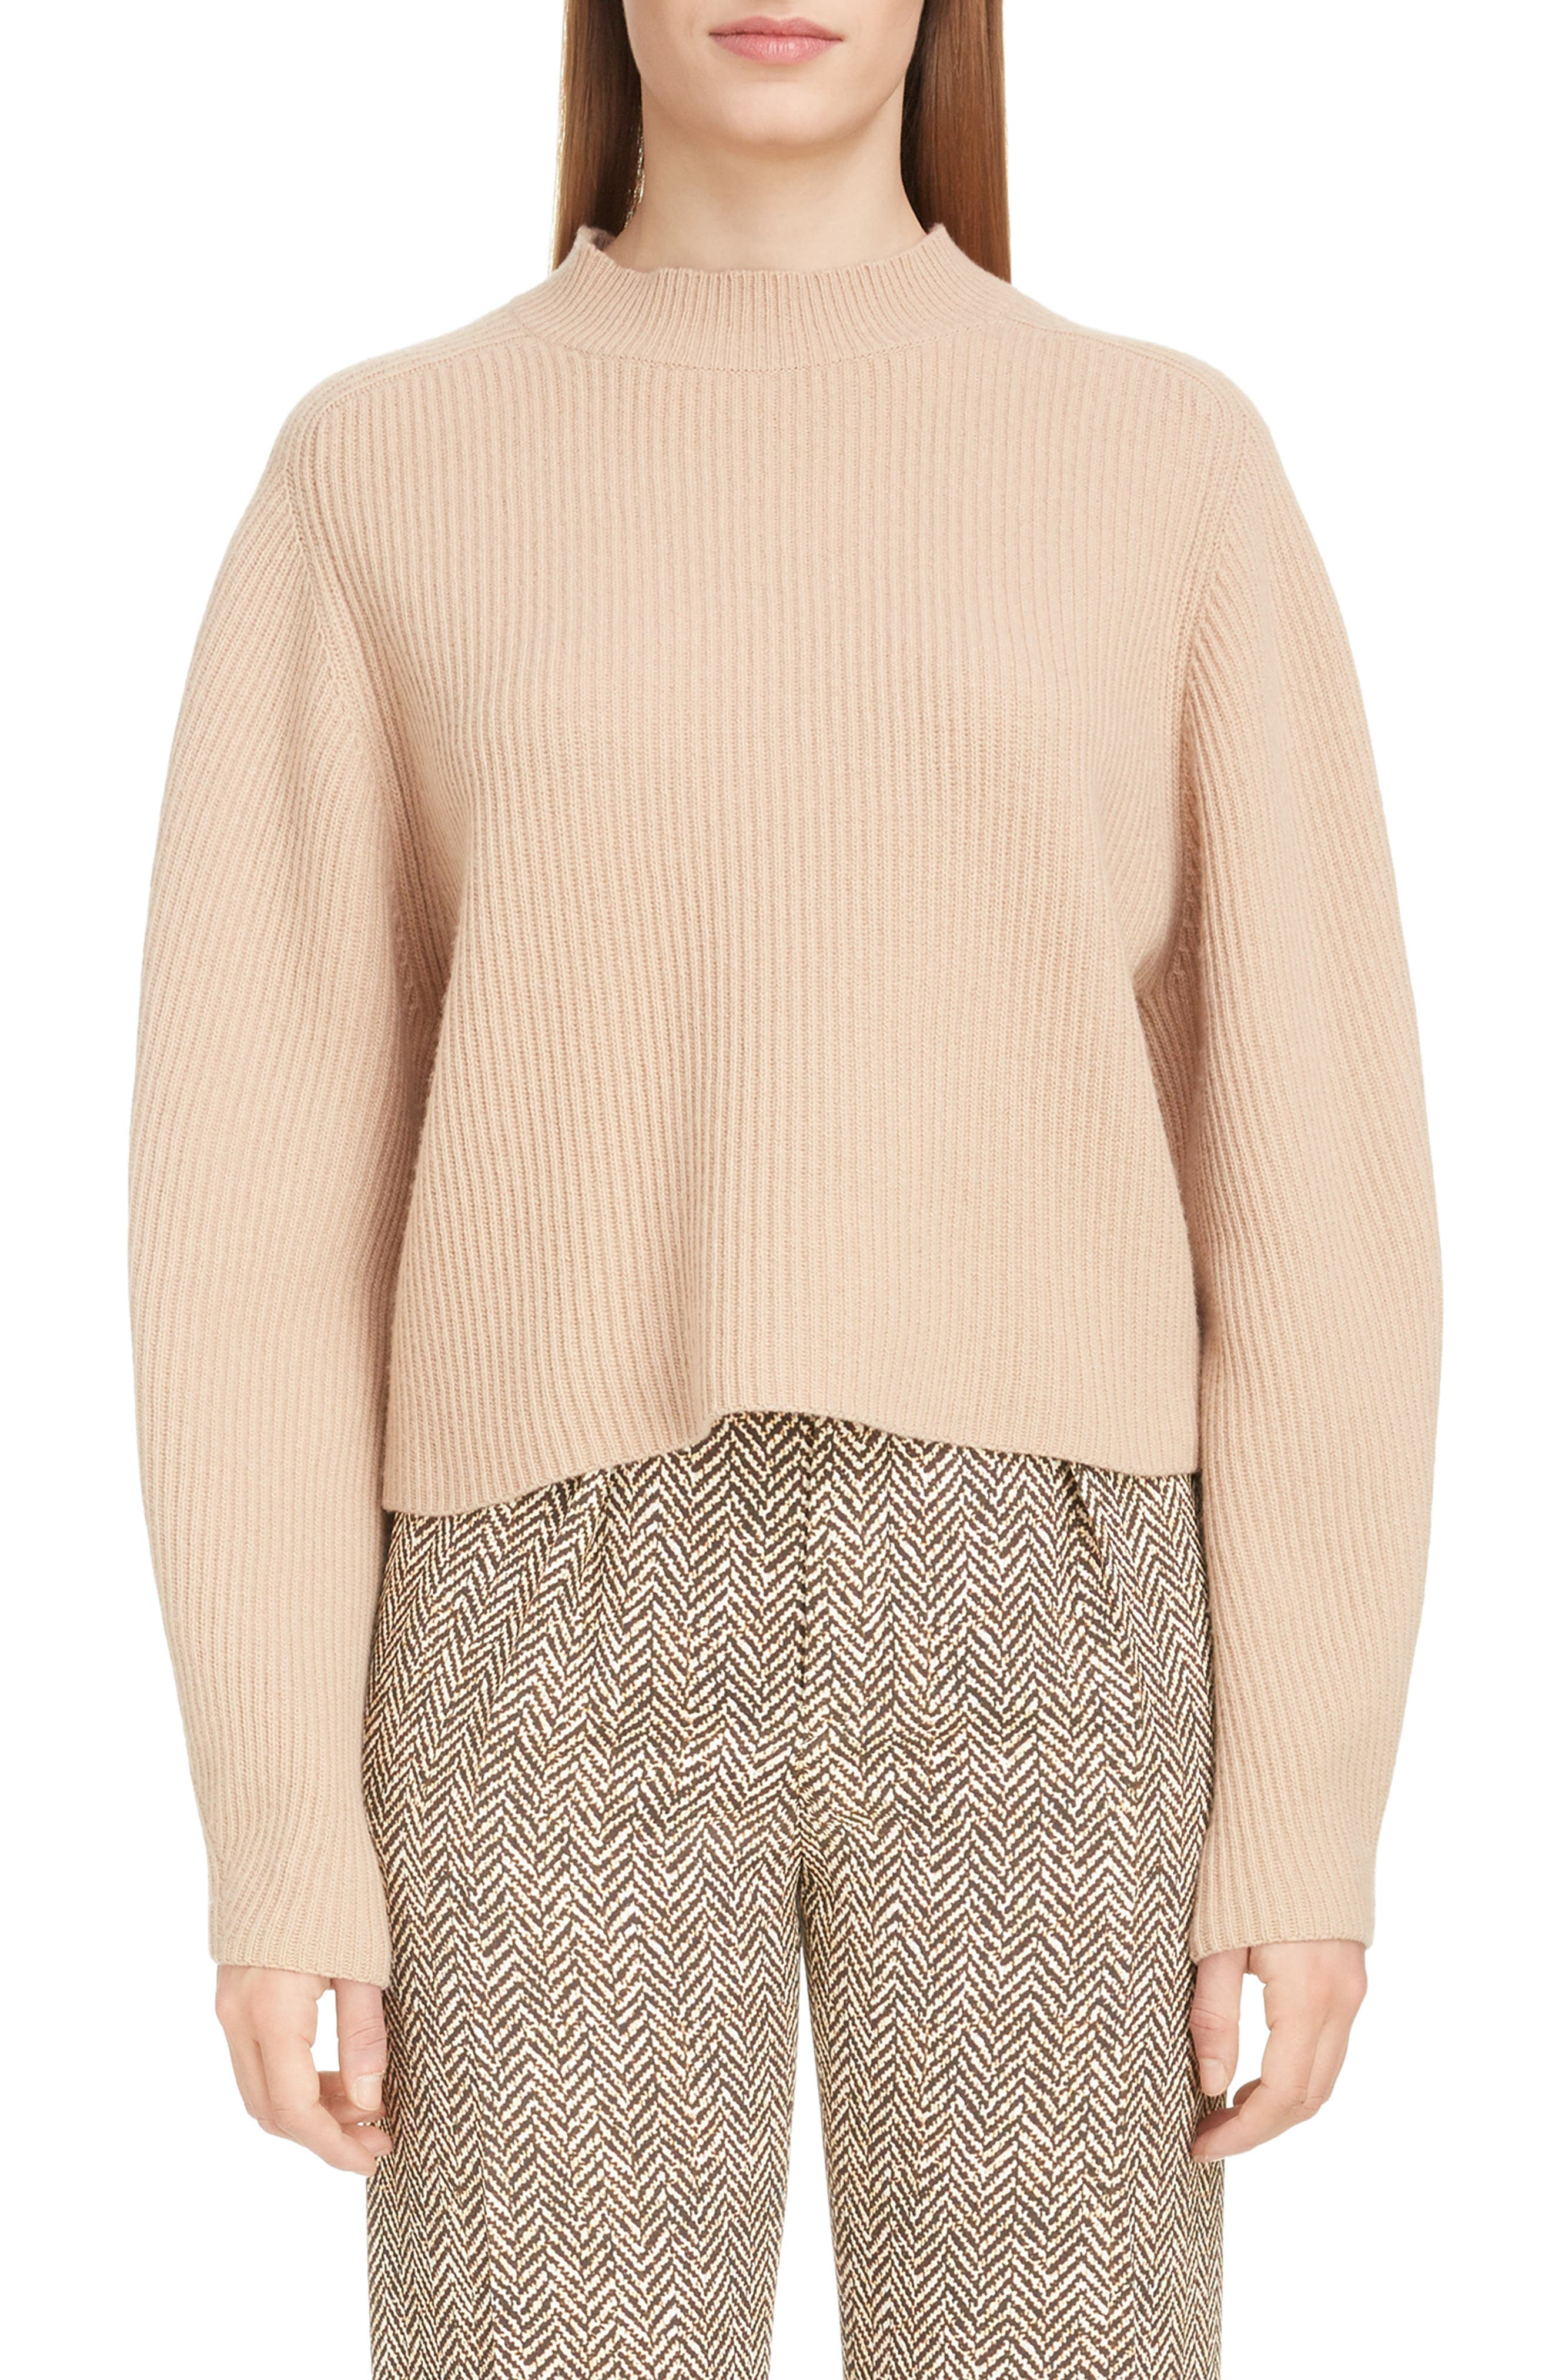 Chloe Exaggerated Sleeve Merino Wool & Cashmere Sweater, Brown